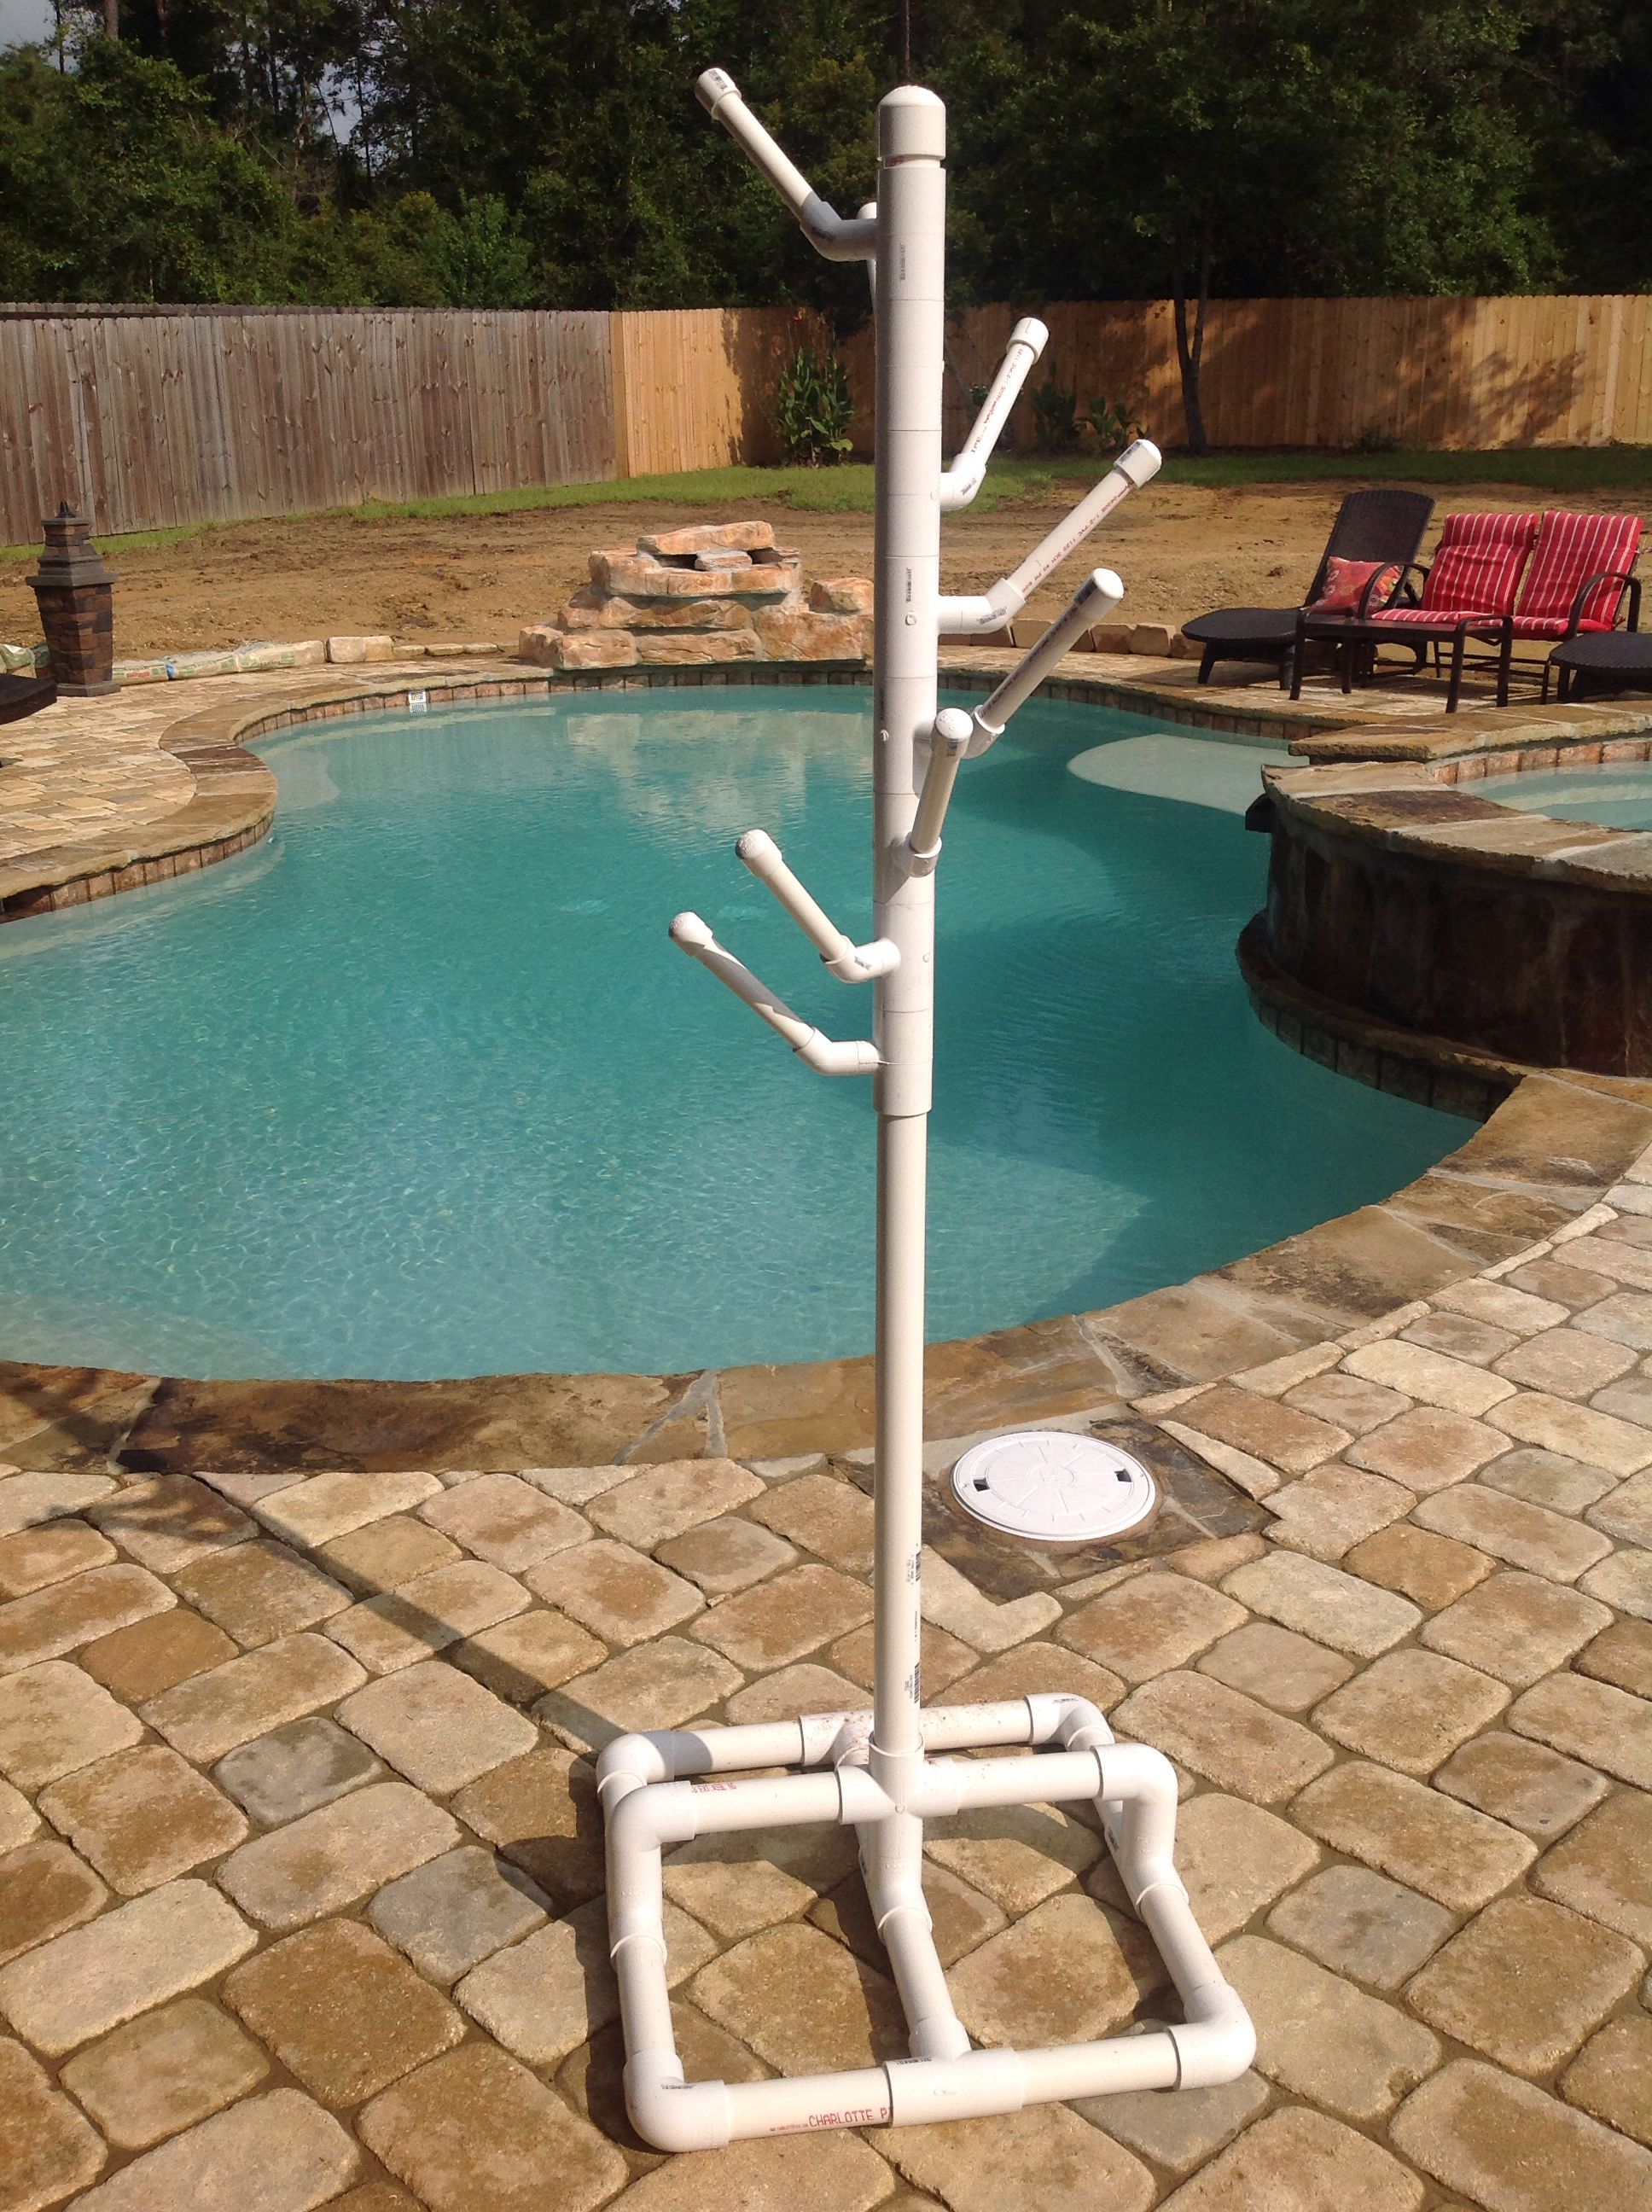 Pool Towel Drying Rack Fascinating Pvc Pool Towel Rackmy Husband Made Us This Pvc Towel Rack For The 2018